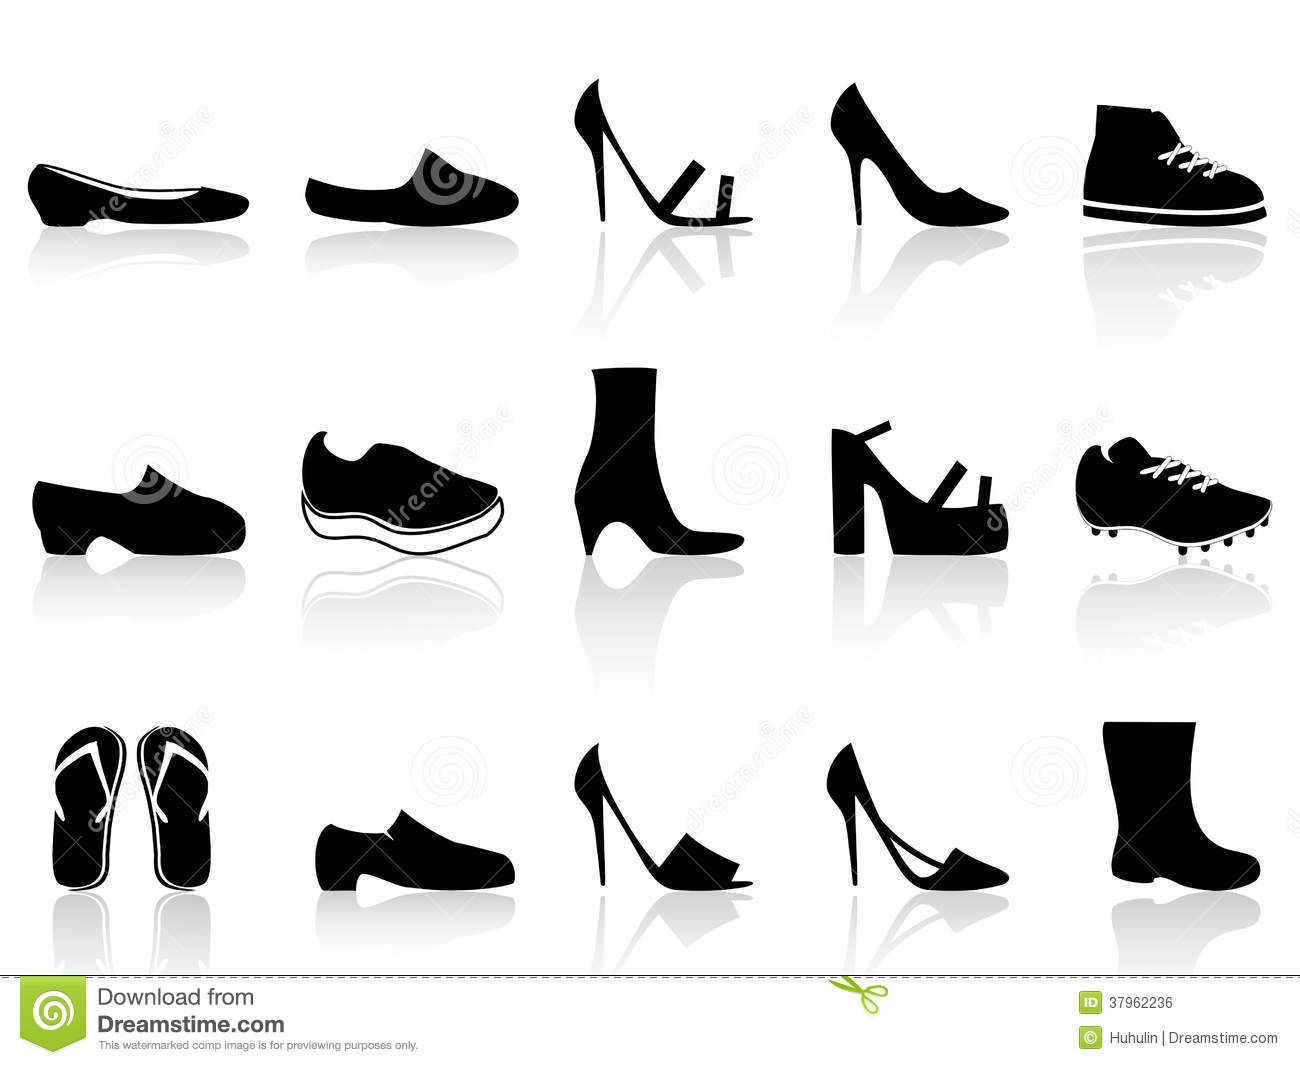 Shoes icons stock vector. Image of icon, element ...